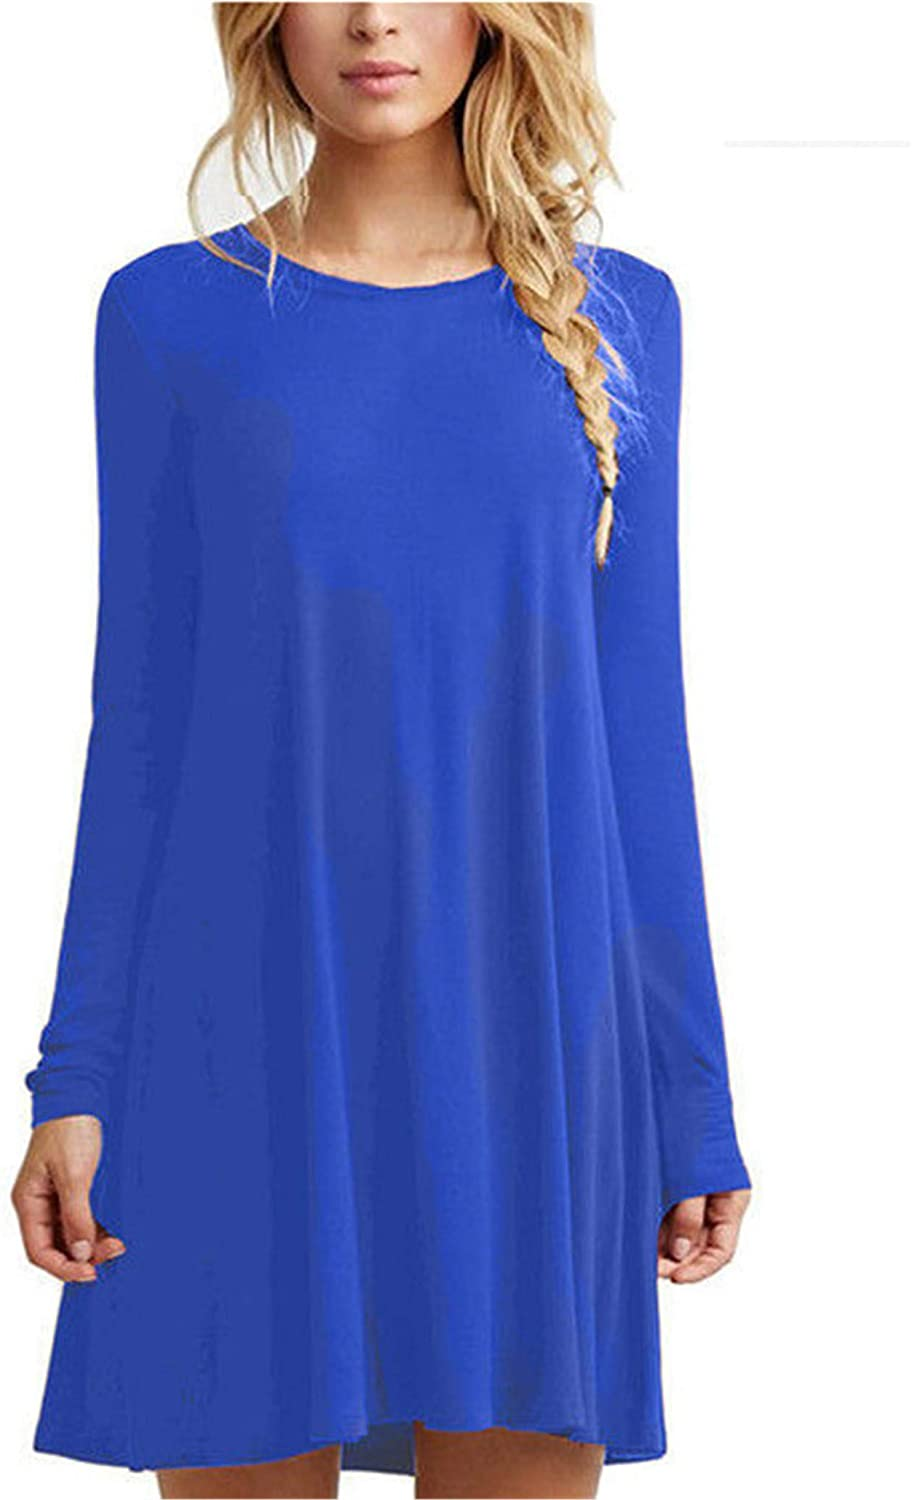 Soluo Womens Long Sleeve Loose Fit Tunic Dress Plus Size Casual Round Neck T-Shirt Dresses Tops Tunic